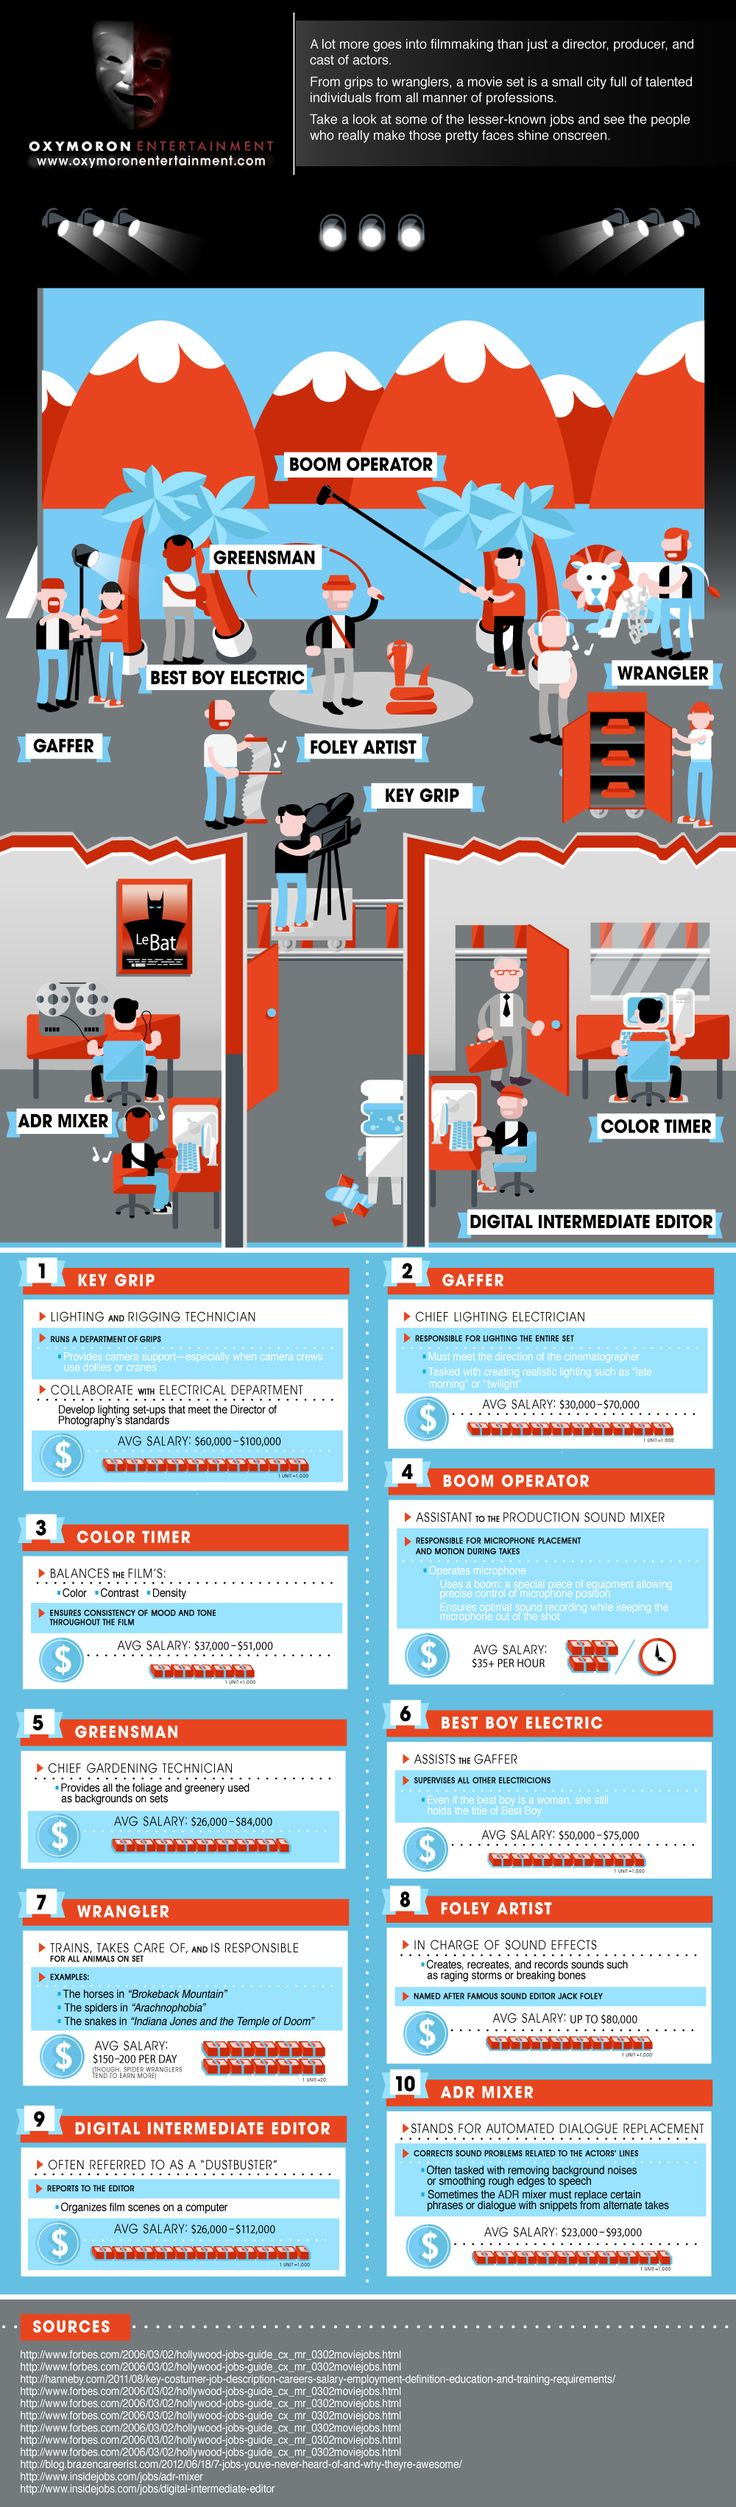 Oxymoron Entertainment Infographic | Odd Jobs On Movie Set  A lot more goes into filmmaking than just a director, producer, and cast of actors. From Grips to Wranglers, a movie set is a small city full of talented individuals from all manner of professions. Take a look below at some of the lesser known and see the people who really make those pretty faces shine onscreen.   http://www.oxymoronent.com/blog